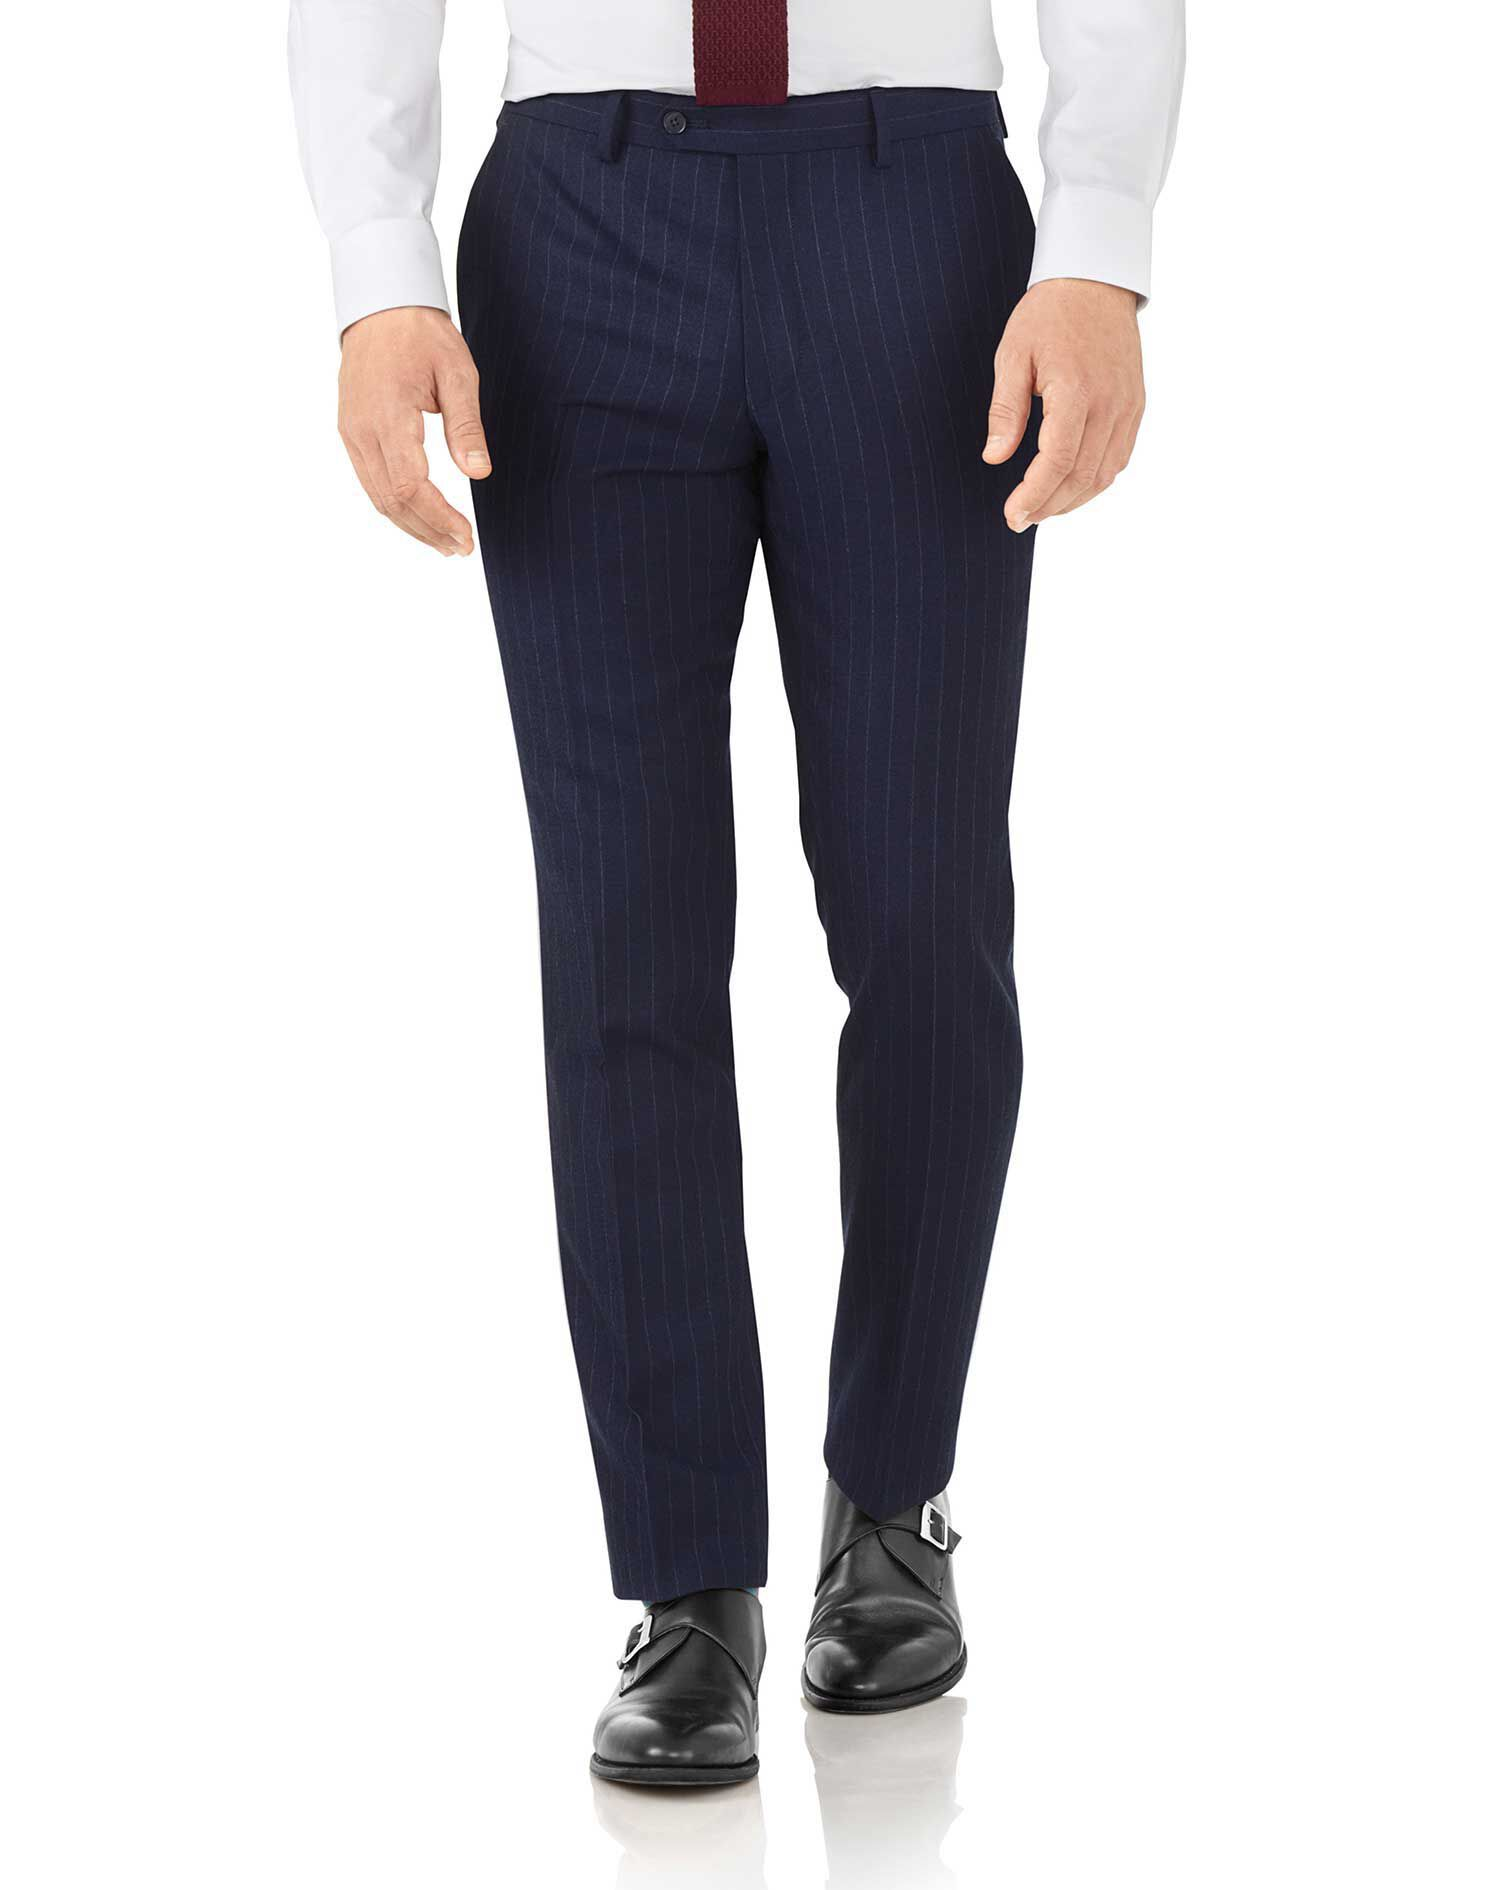 Navy Stripe Slim Fit Flannel Business Suit Trousers Size W32 L32 by Charles Tyrwhitt